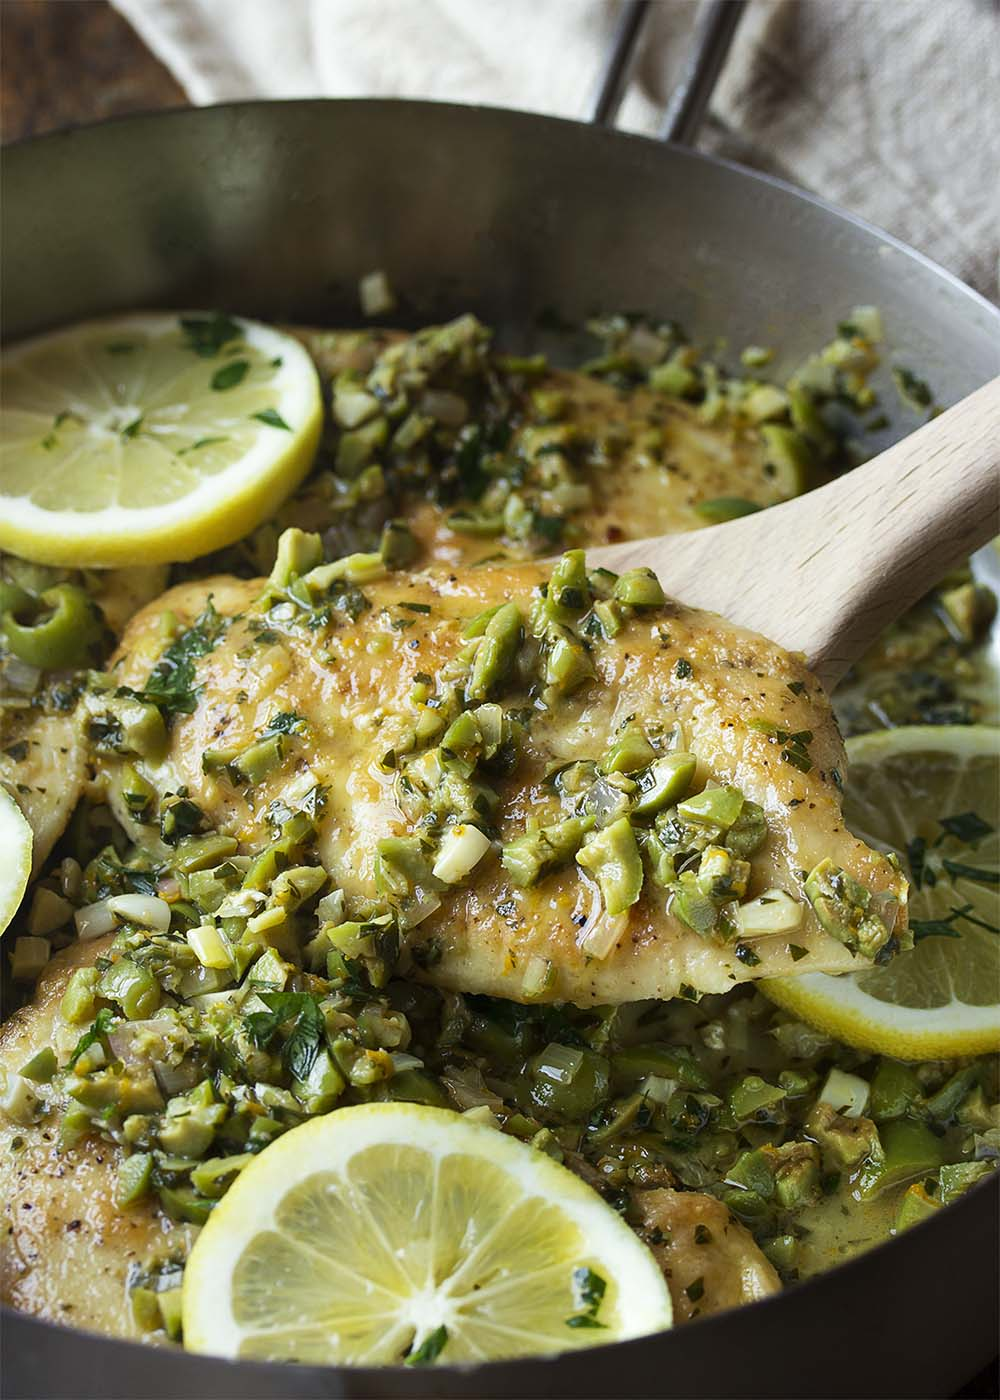 A skillet filled with golden brown chicken breasts topped with chopped green olives in a gremolata sauce.